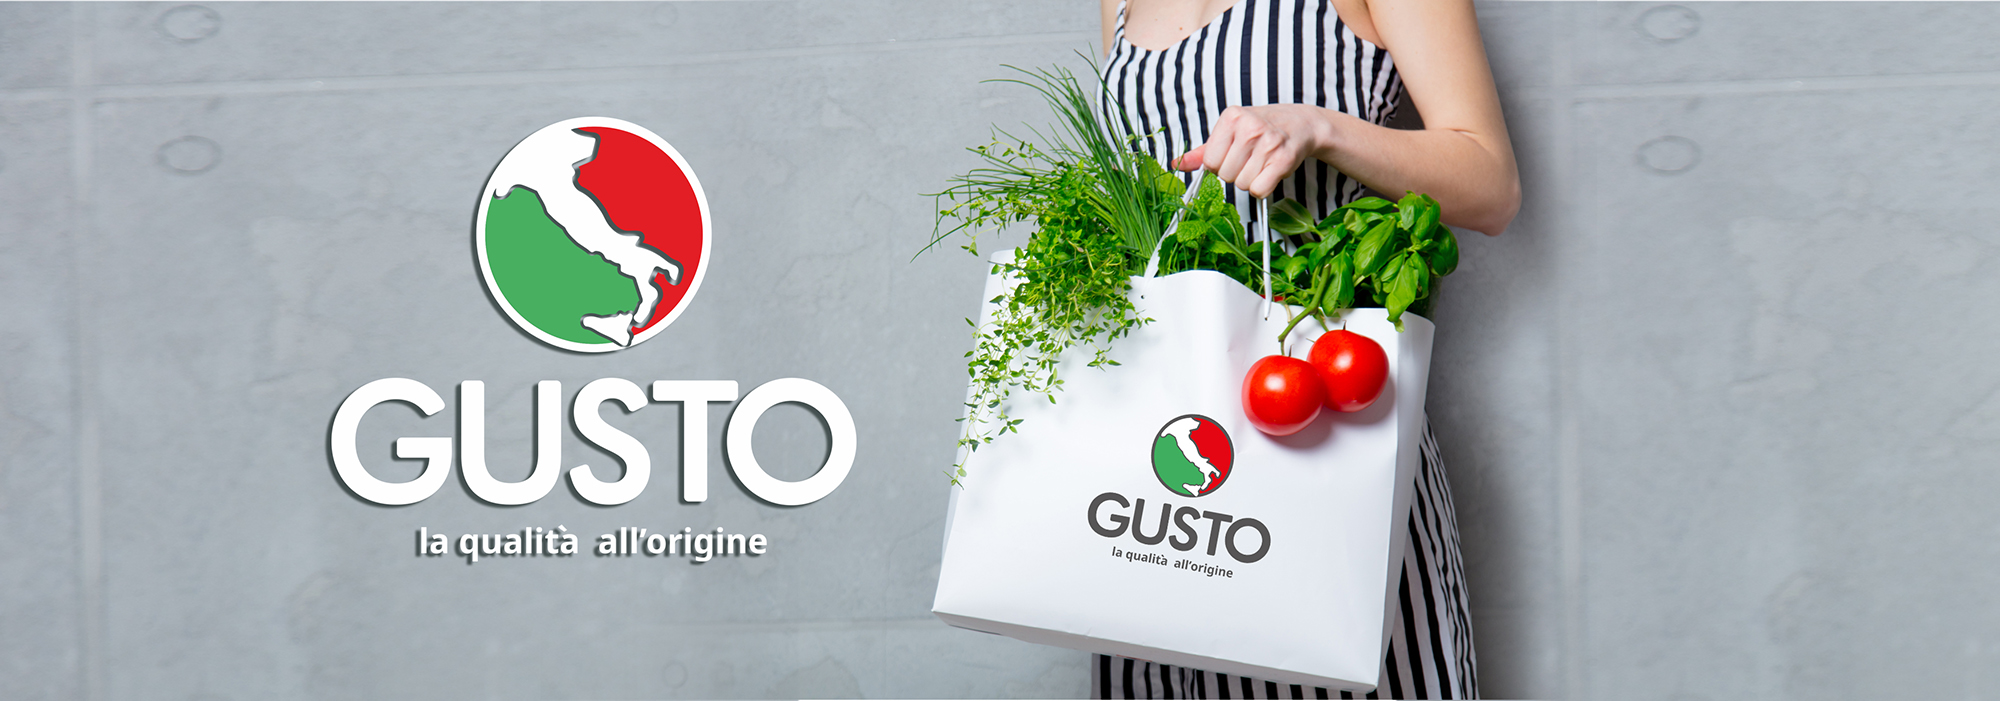 Gusto - la qualita  all' origine